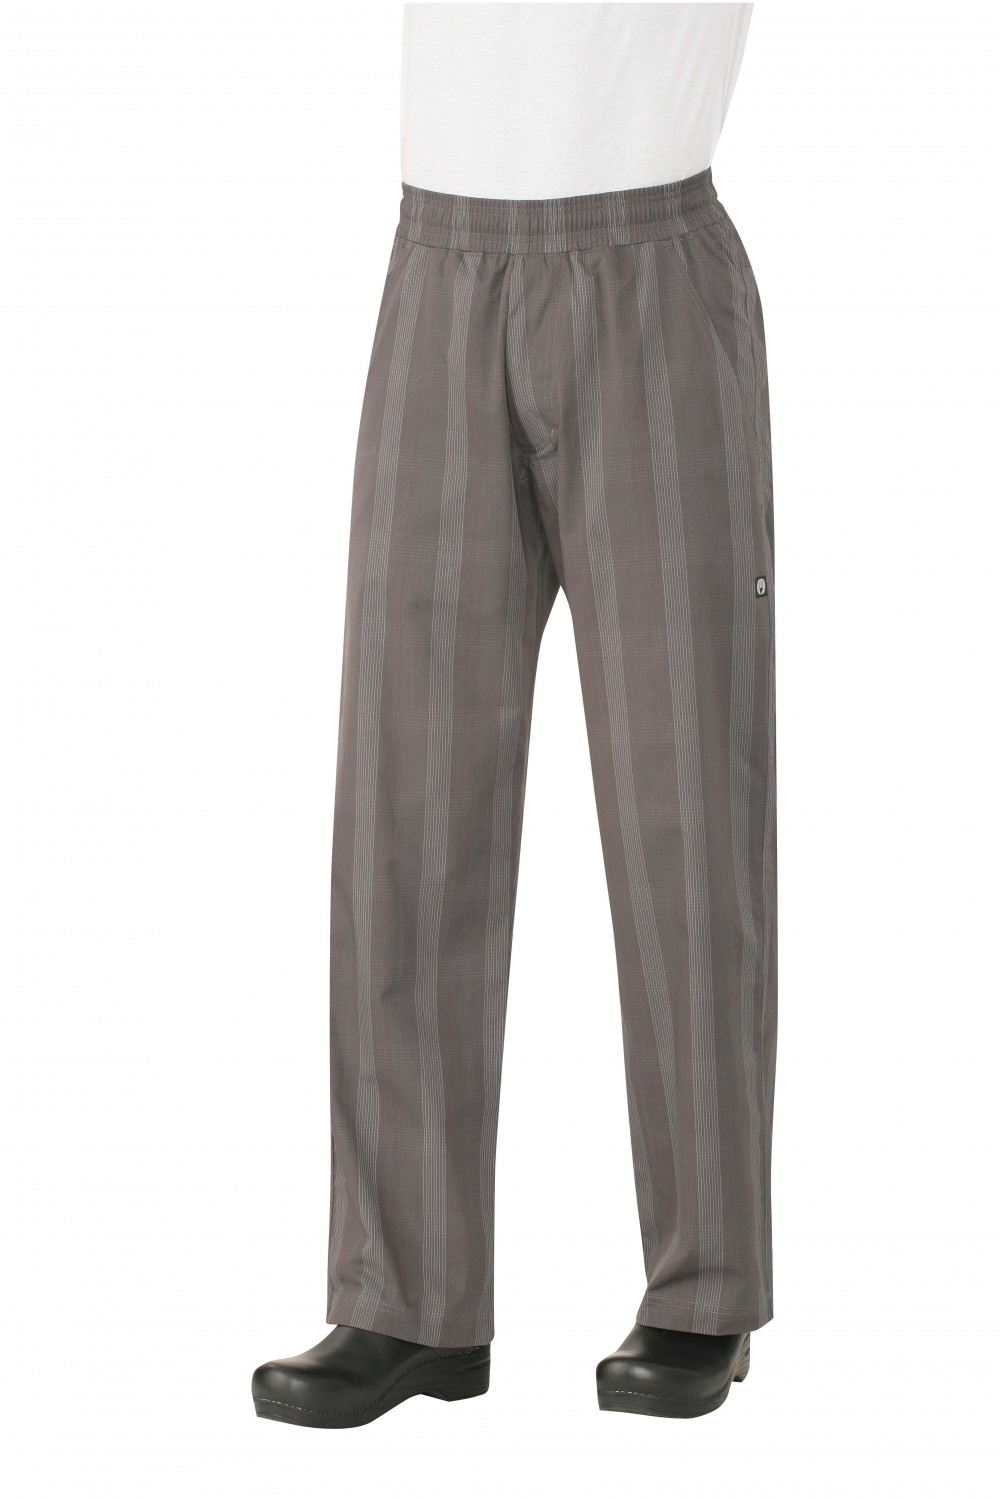 Chef Works BPLD-GRY UltraLux Better Built Baggy Pants, Gray Plaid